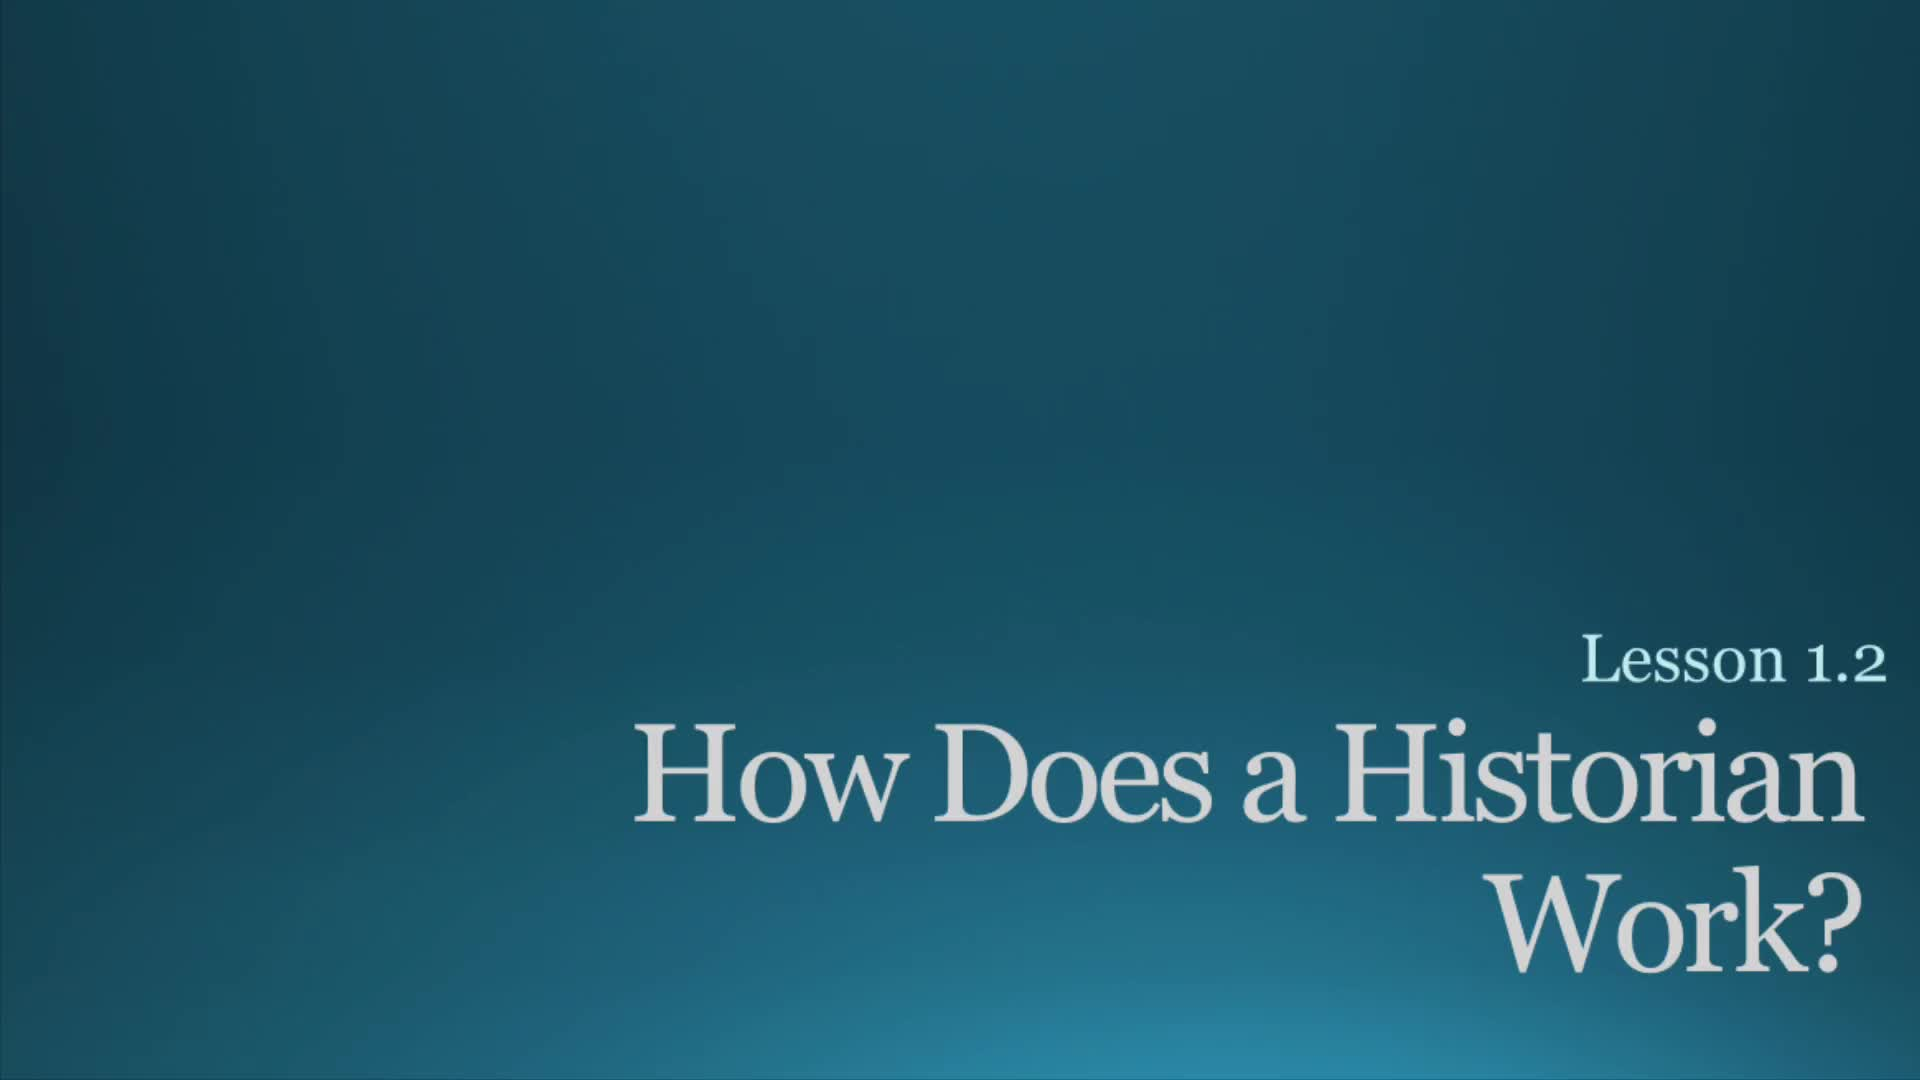 Chapter 1, Lesson 2 How does a Historian Work